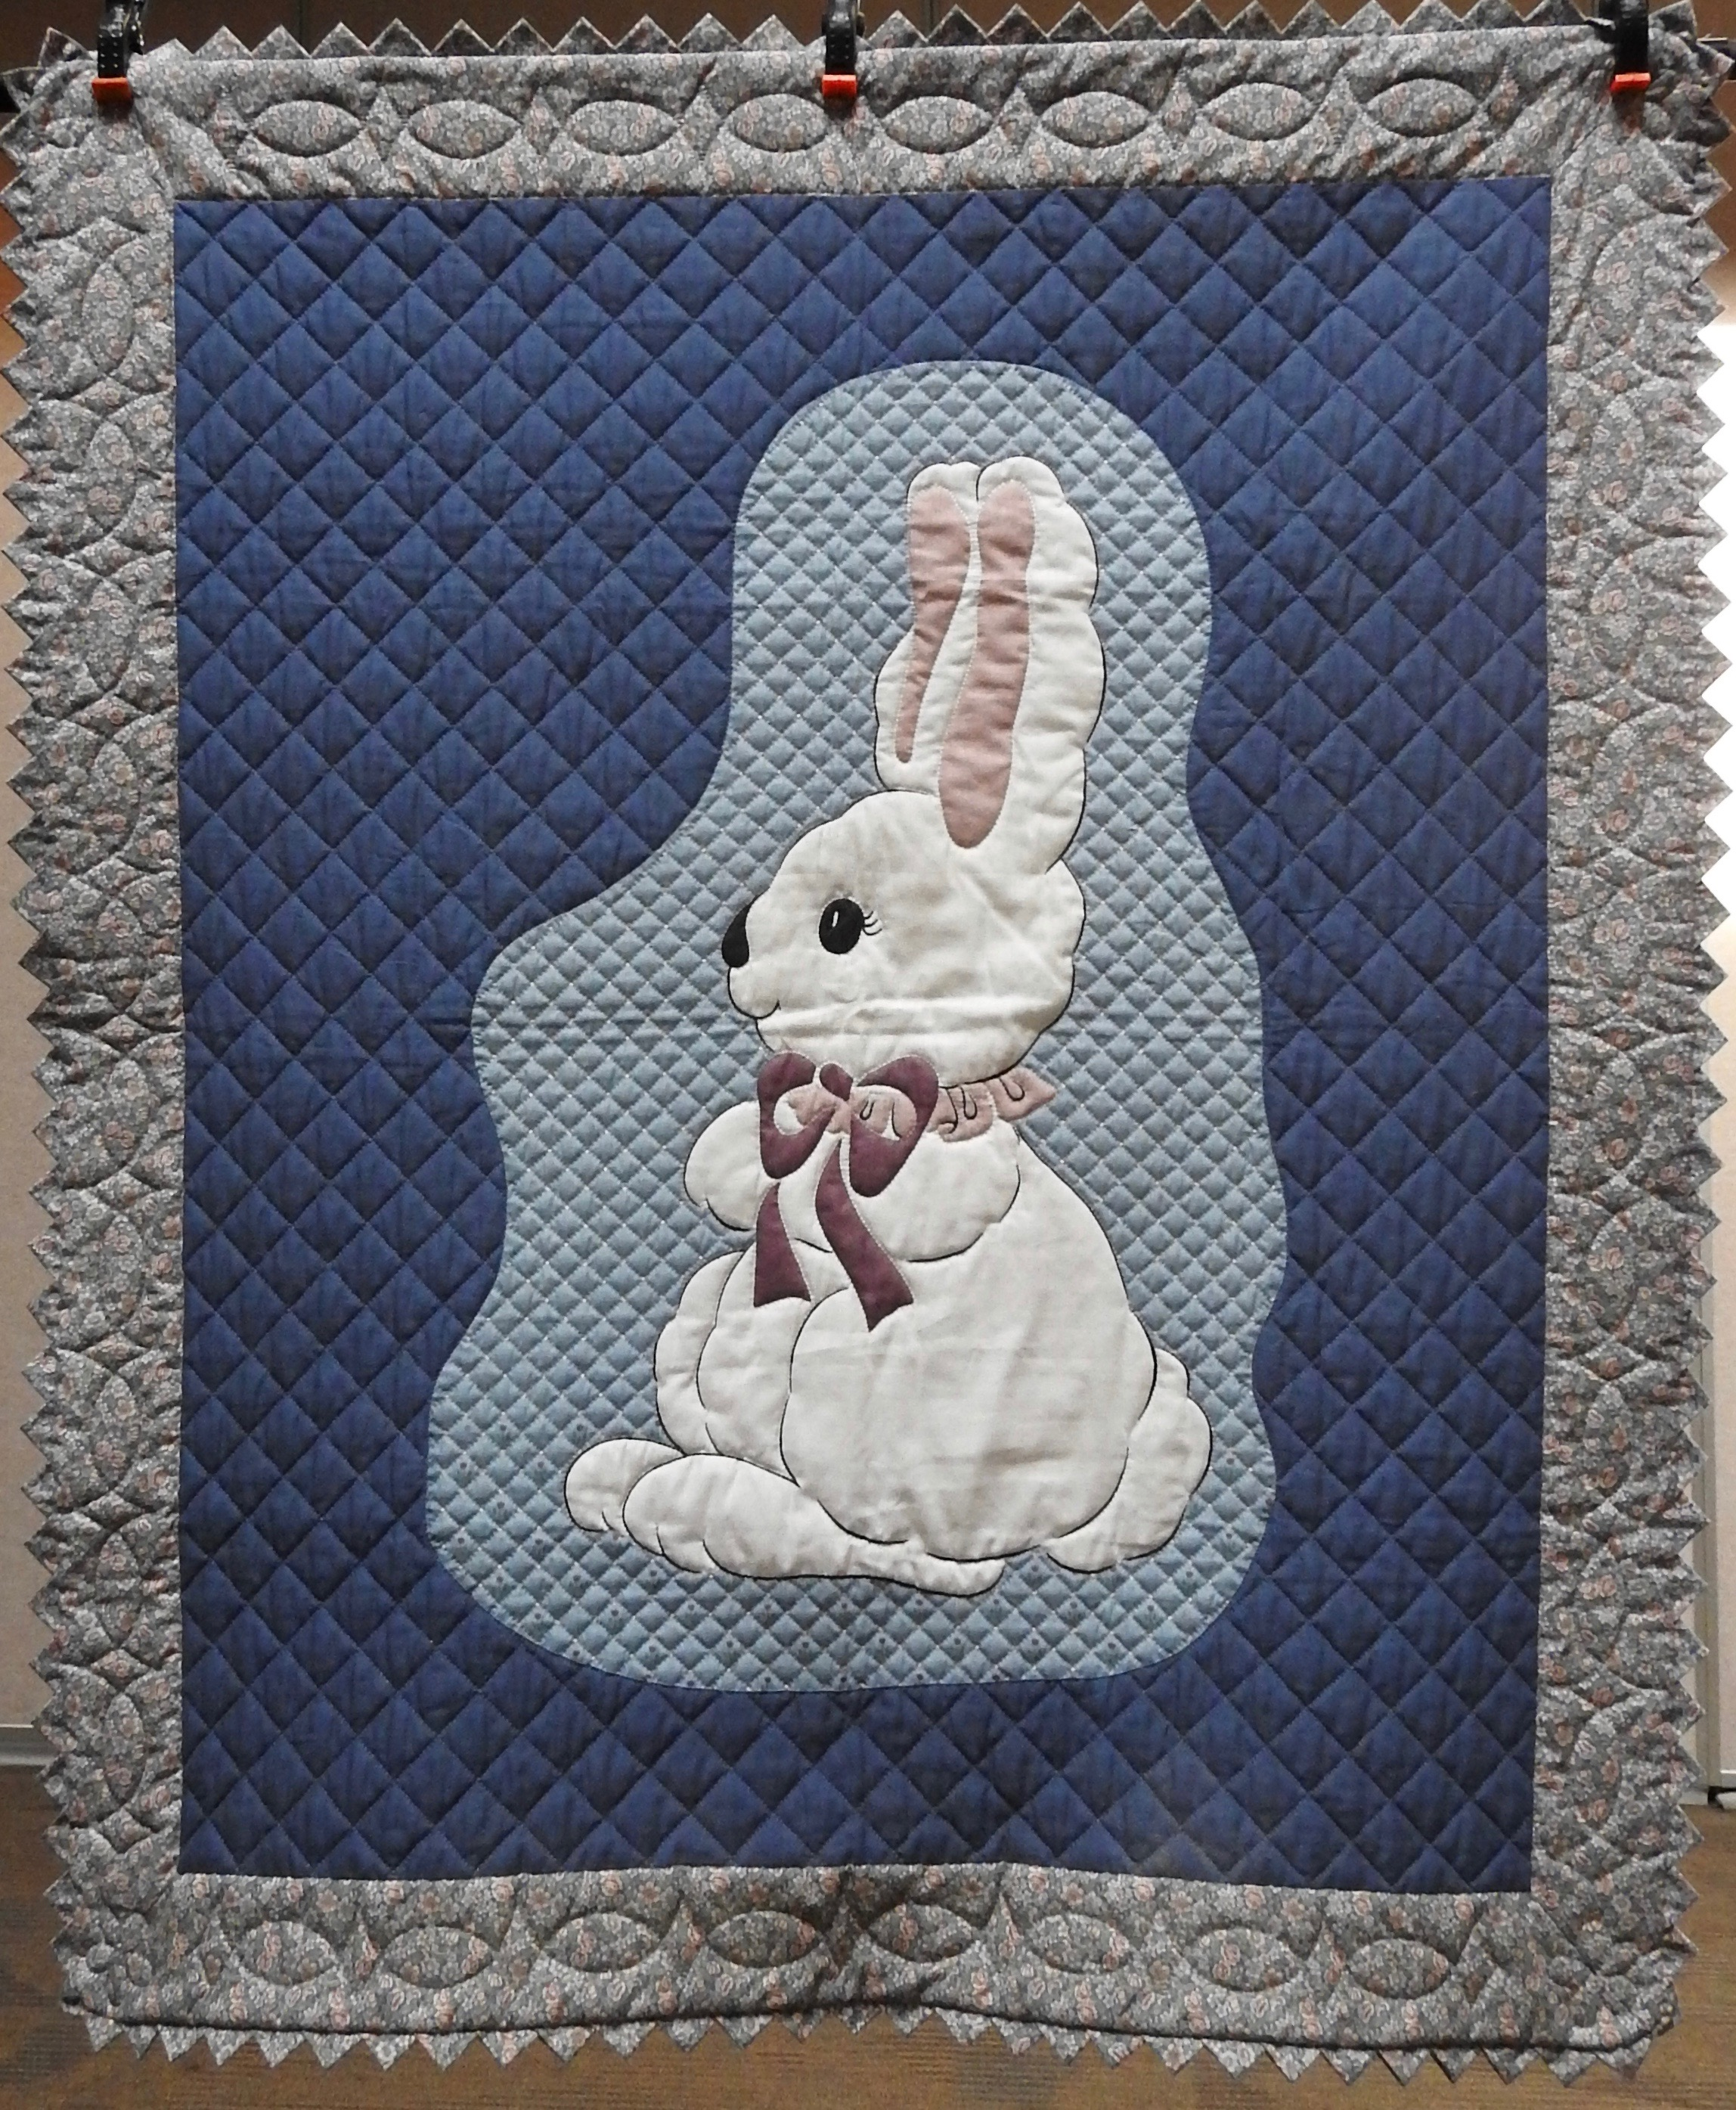 Rabbit Wall Quilt, Designed by Karen Moss, Appliquéd and Hand Quilted by Isabel Leipprandt, donated by Wayne & Karen Moss, 45 x 52""